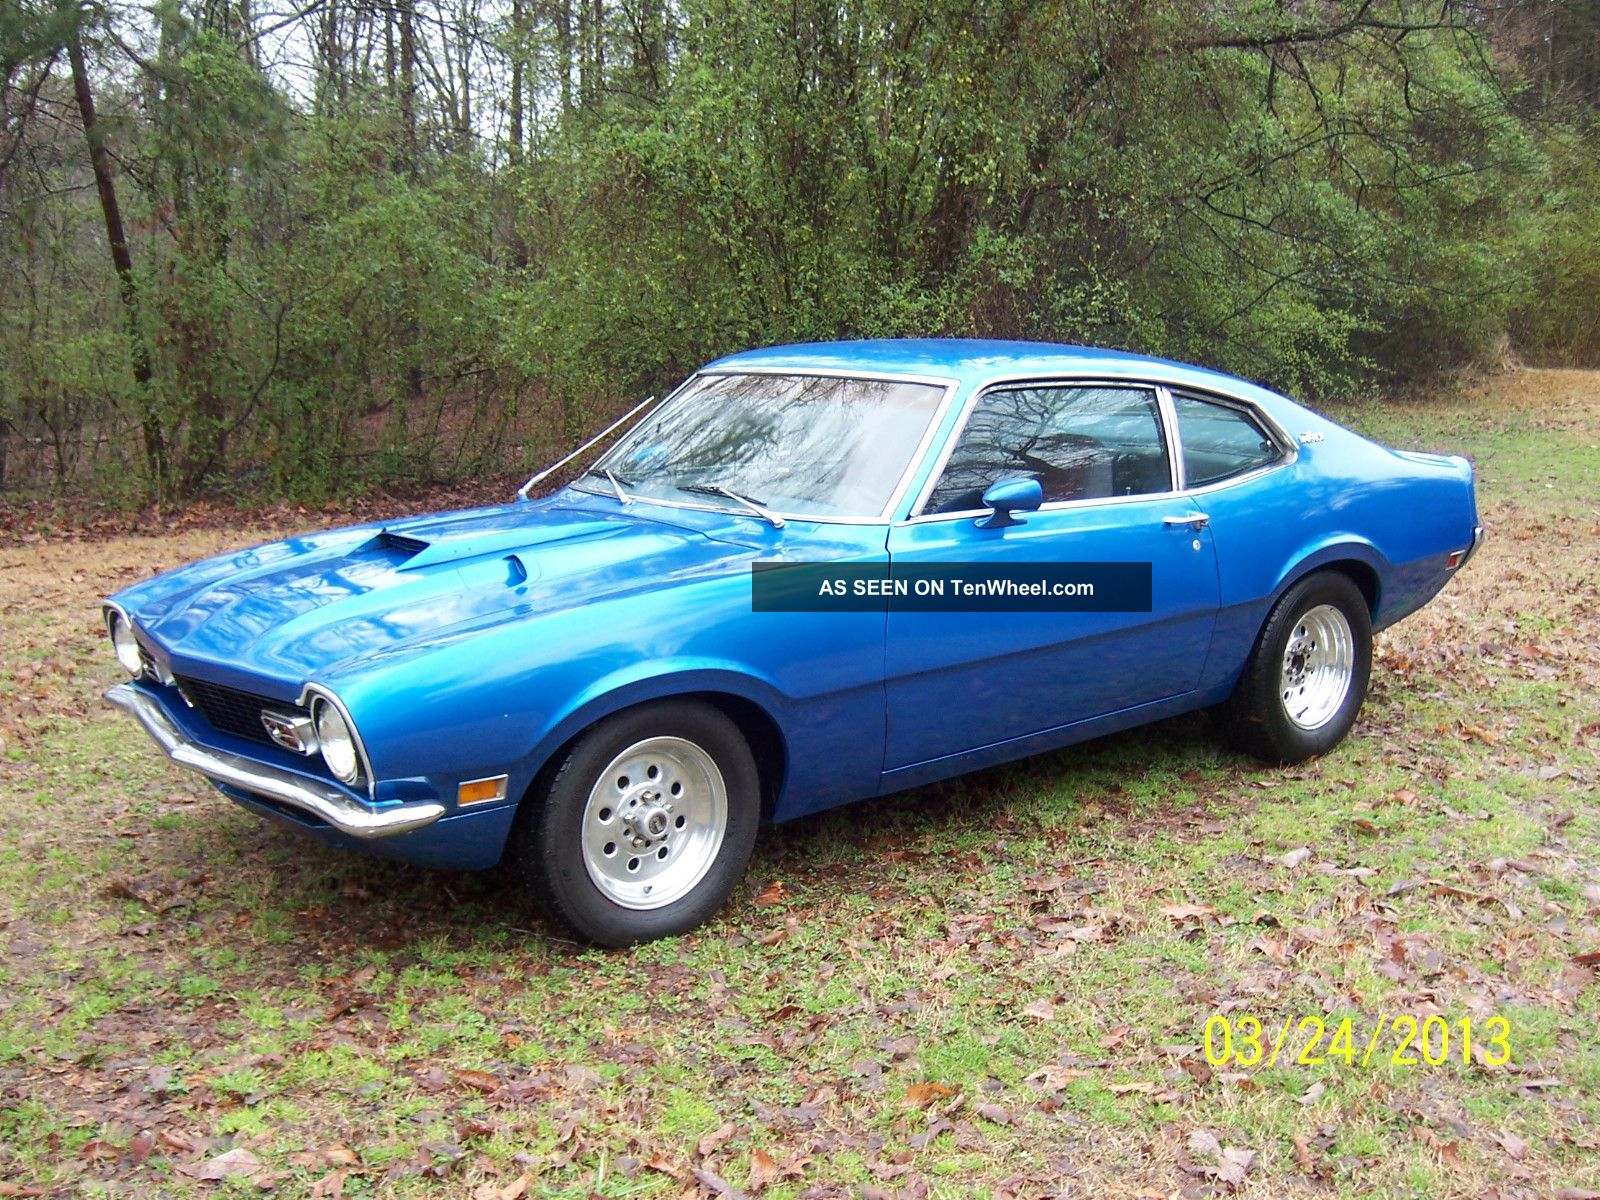 1991 Mercury Capri Body Kit Wiring Diagrams further Wiring Diagram 1970 Dodge Charger also World Map For Android Mobile additionally Wiringt1 in addition 1973 Ford Maverick Fuse Box. on 1977 chrysler new yorker wiring diagram